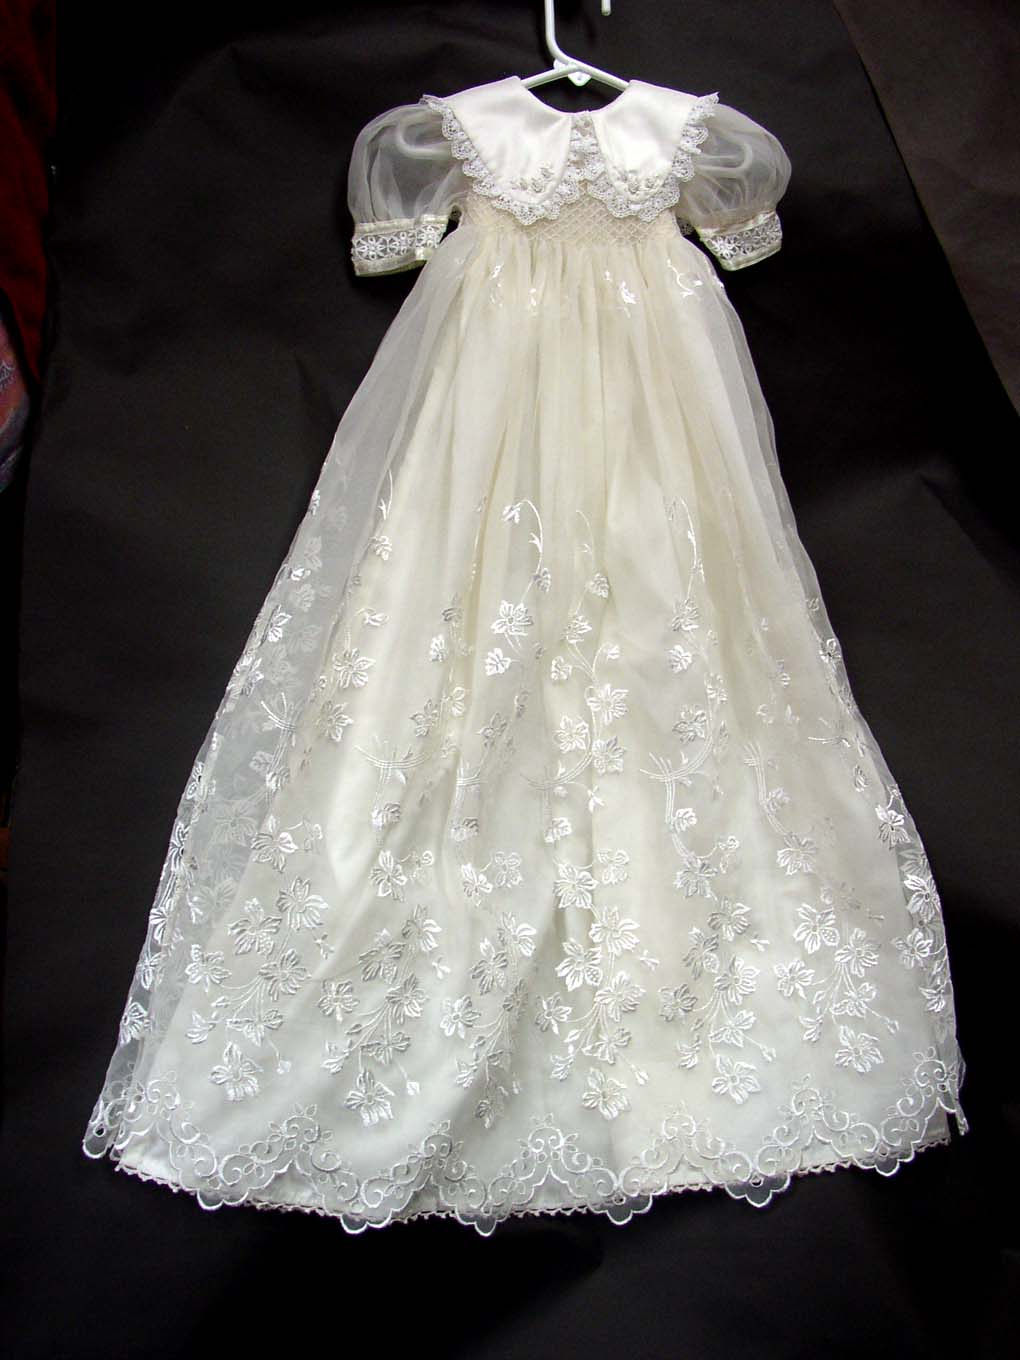 From Wedding Dress To Blessing Gown